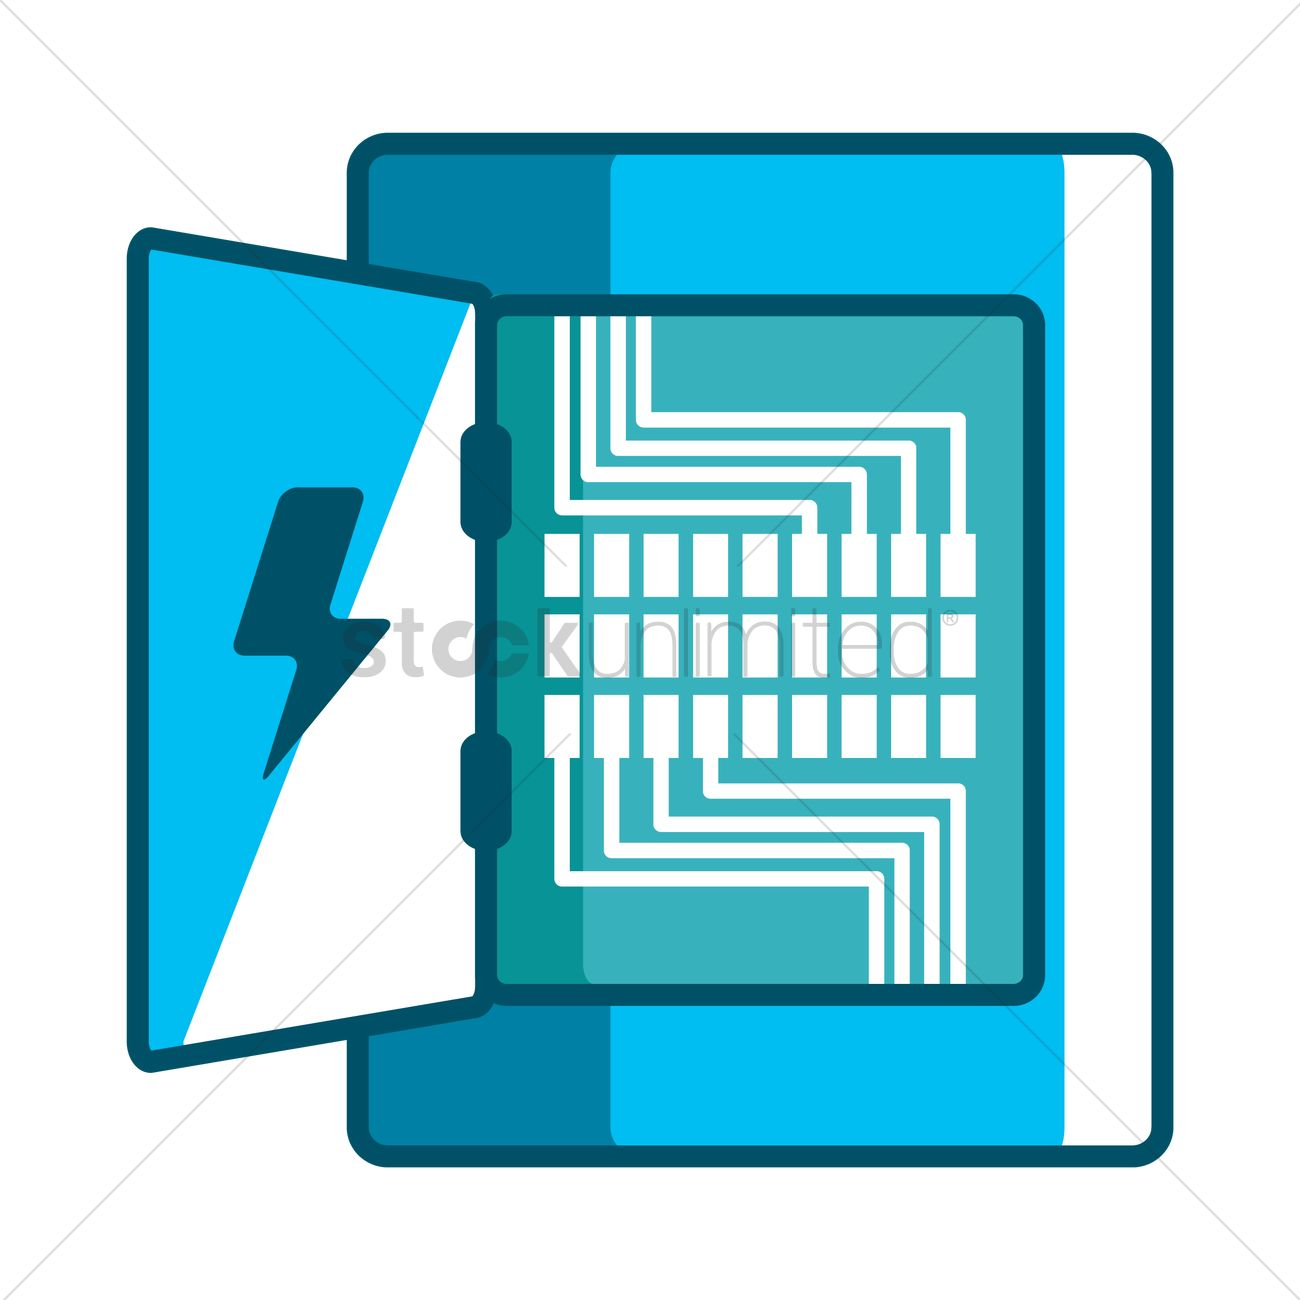 Electricity distribution box vector image 1380307 stockunlimited electricity distribution box vector graphic biocorpaavc